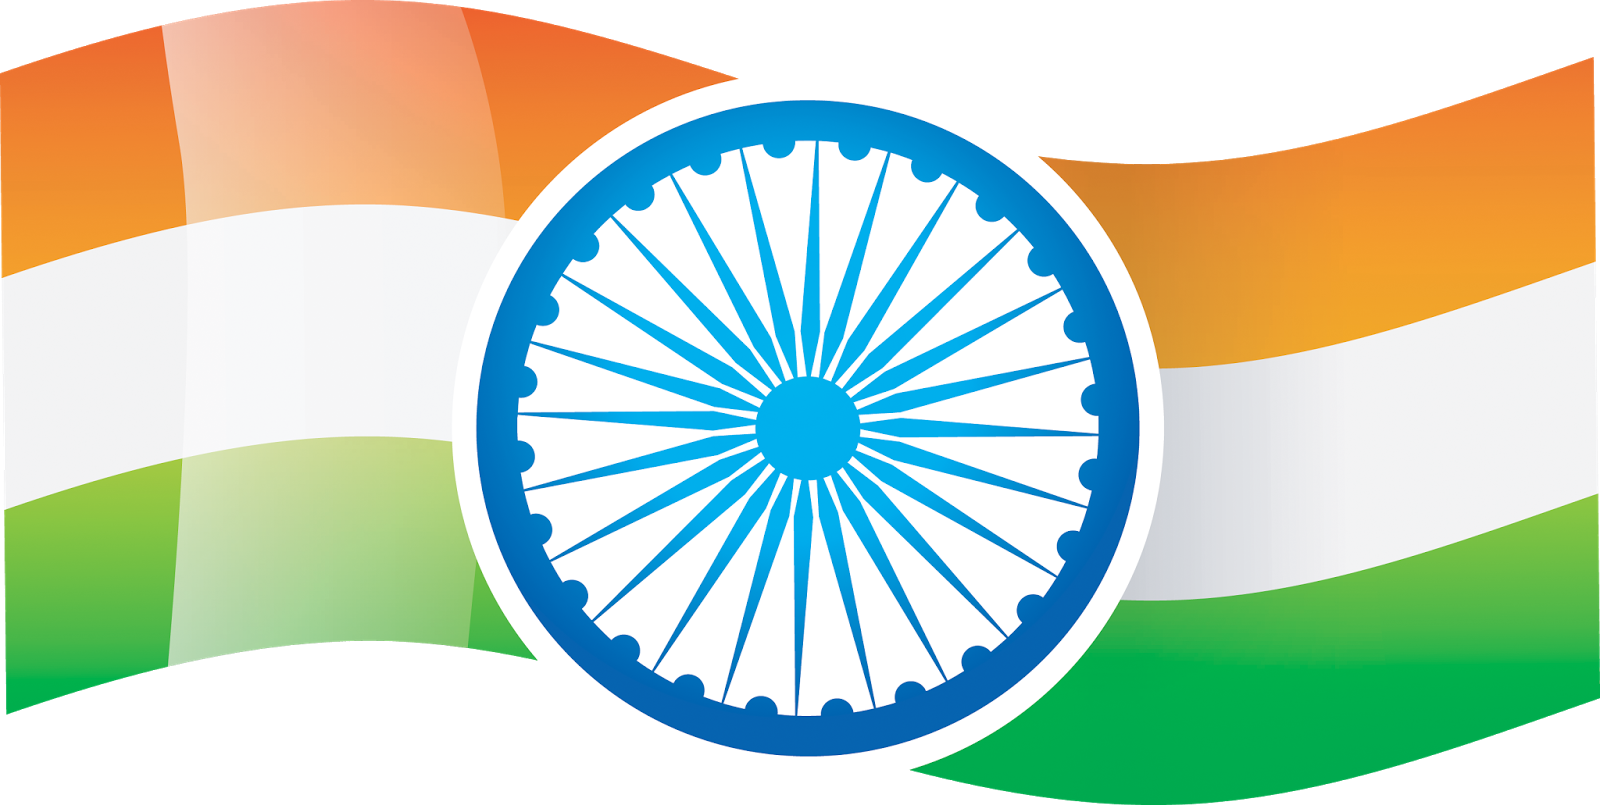 indian flag hd transparent download flag icon india #38892